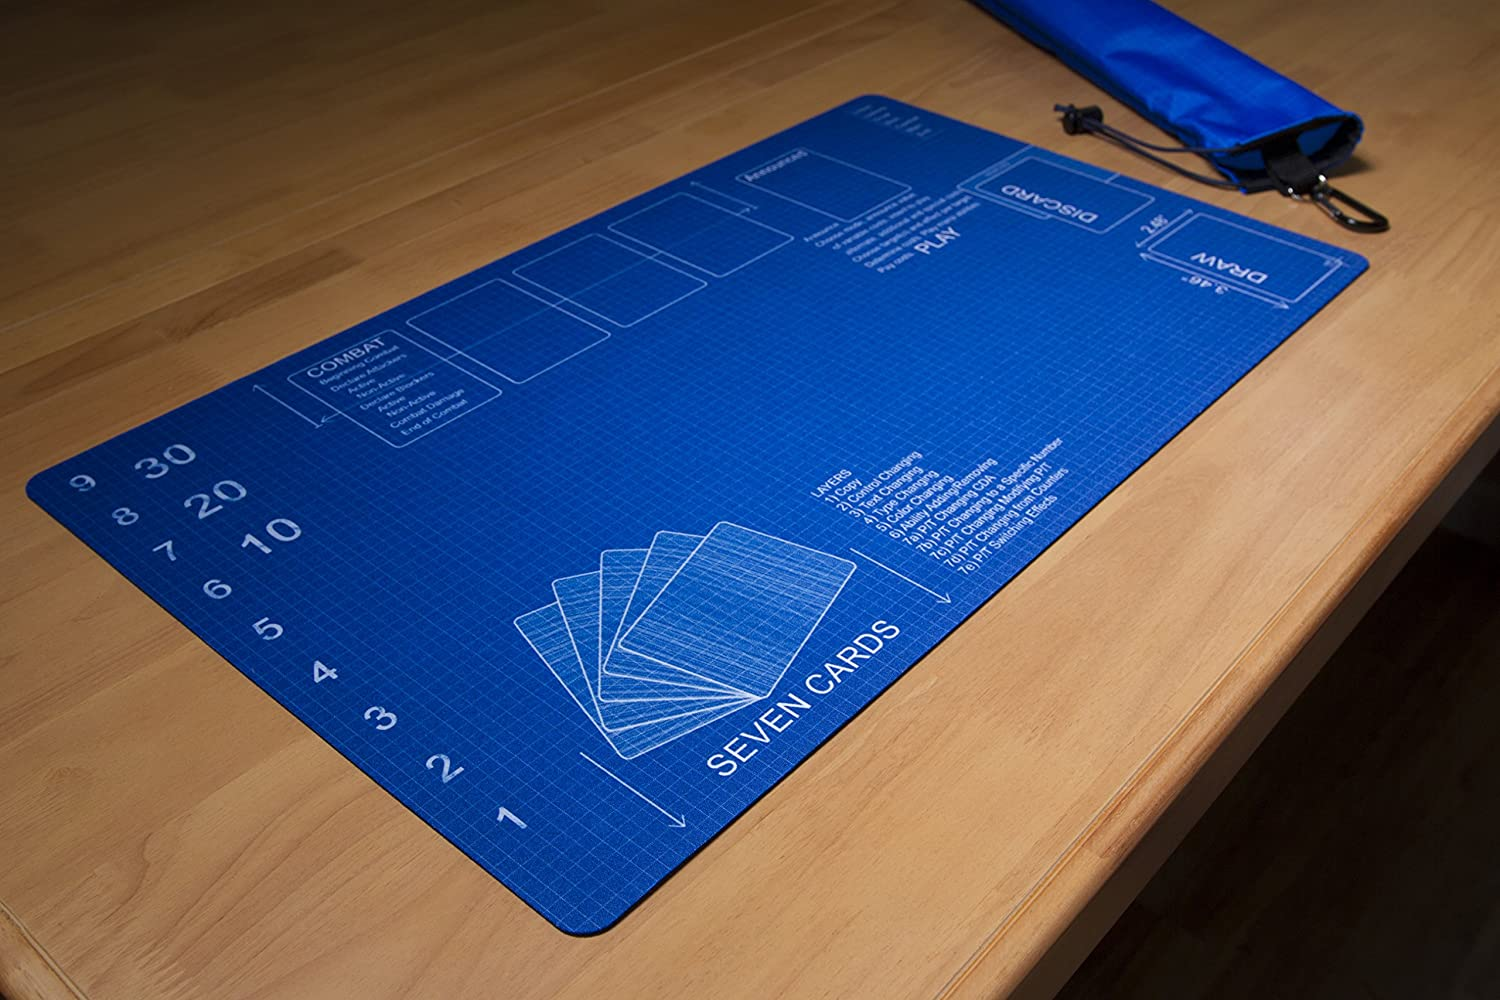 Blueprint Playmat Playmat Bag Kit by Inked Gaming Perfect for TCG Card Gaming Playmat Tube Plus Playmat Inked Playmats